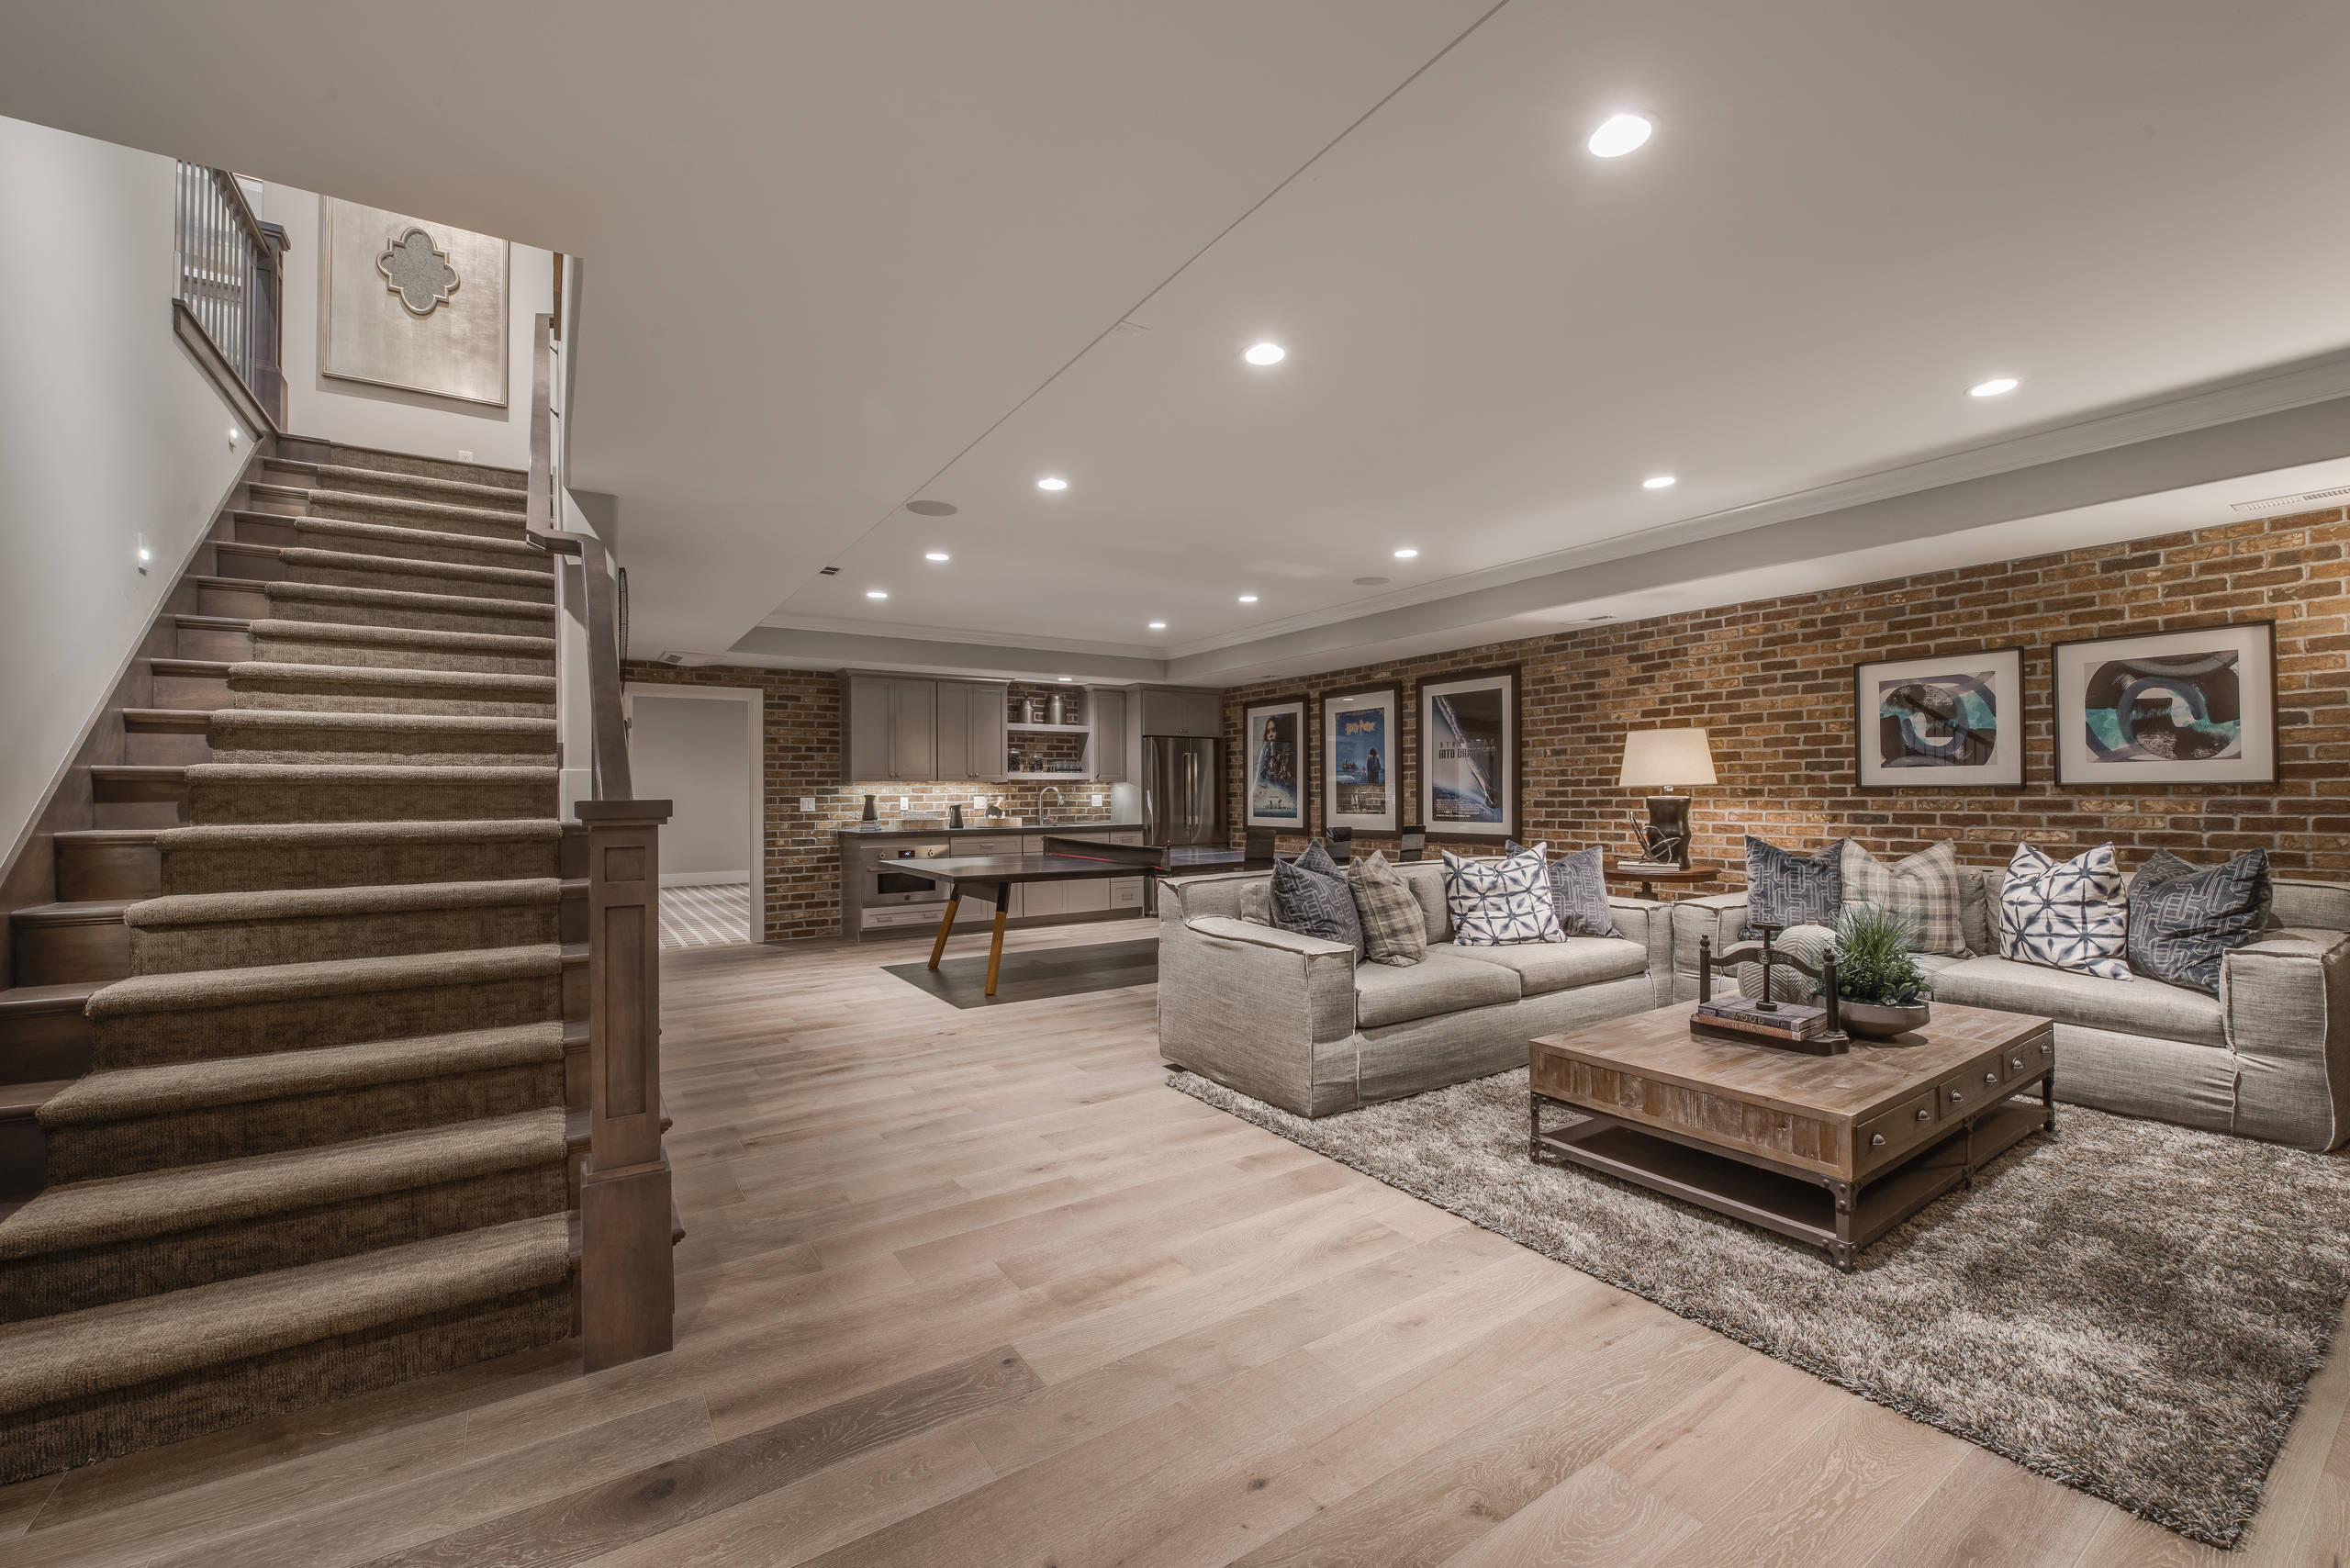 75 Beautiful Traditional Basement Pictures Ideas April 2021 Houzz